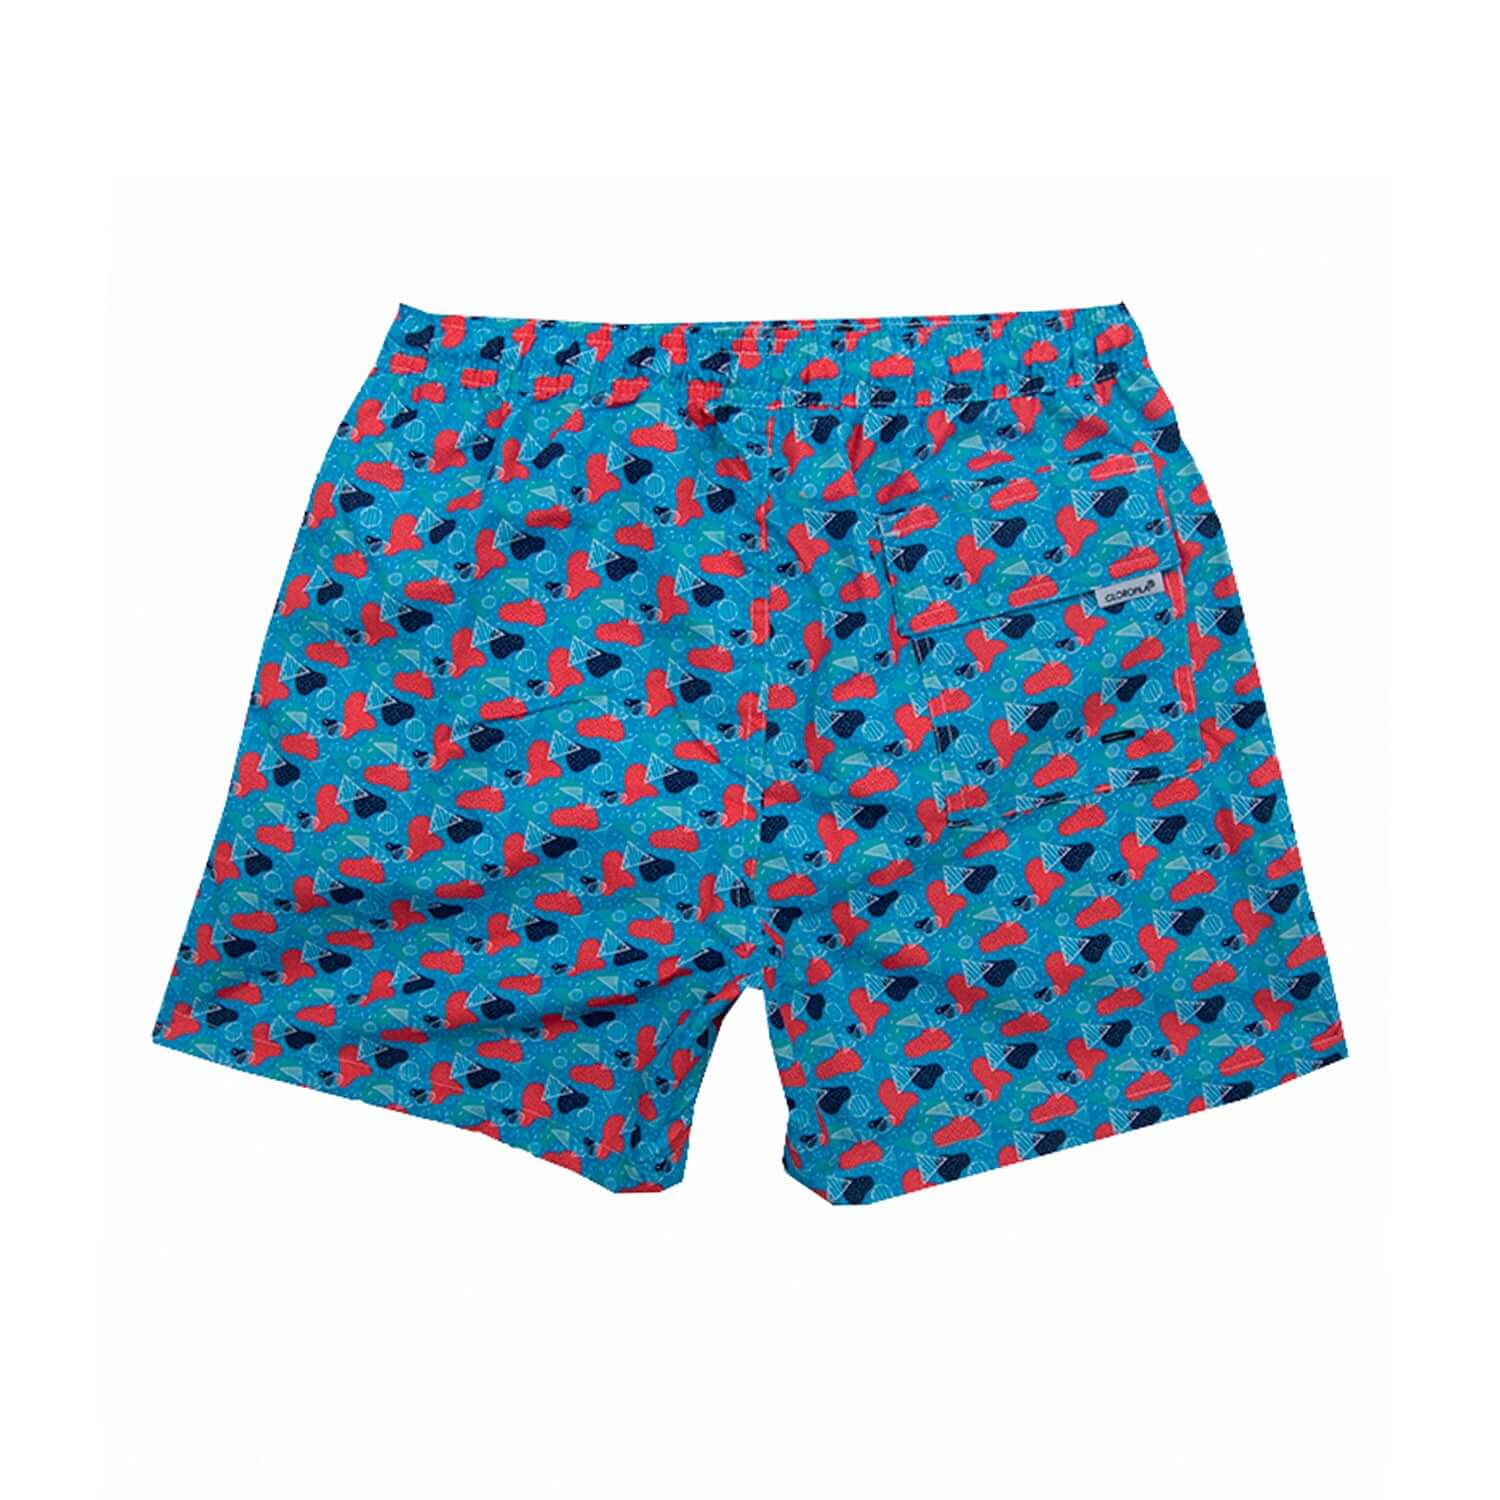 GOLF BLUE - Clorofila Sea Wear